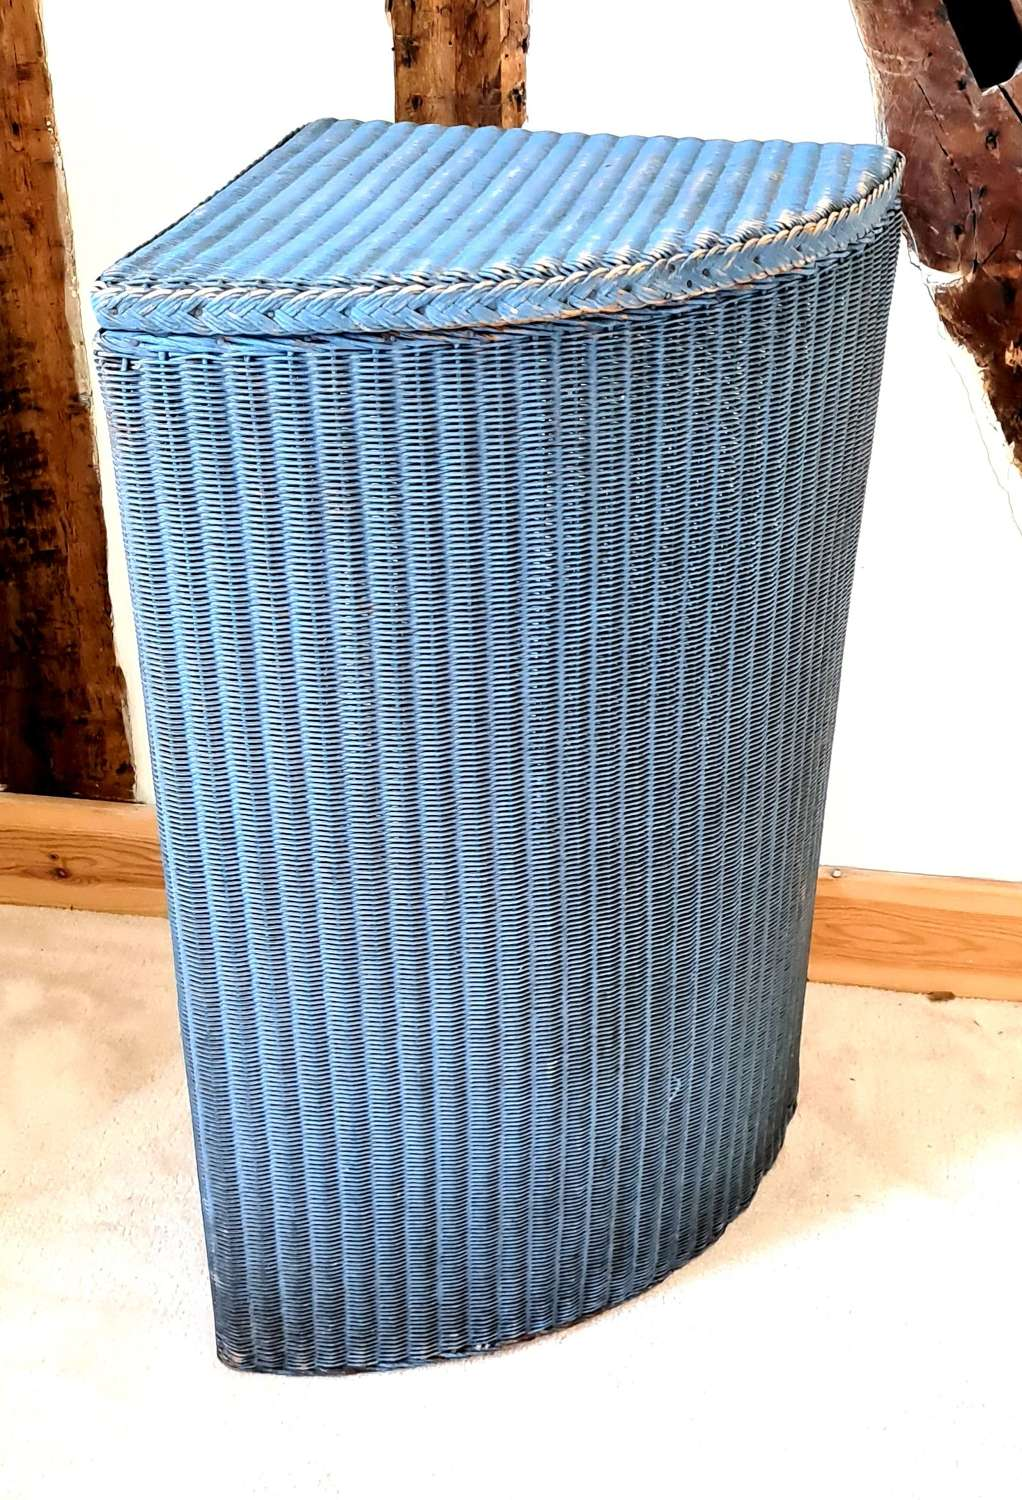 Lloyd Loom Laundry Basket